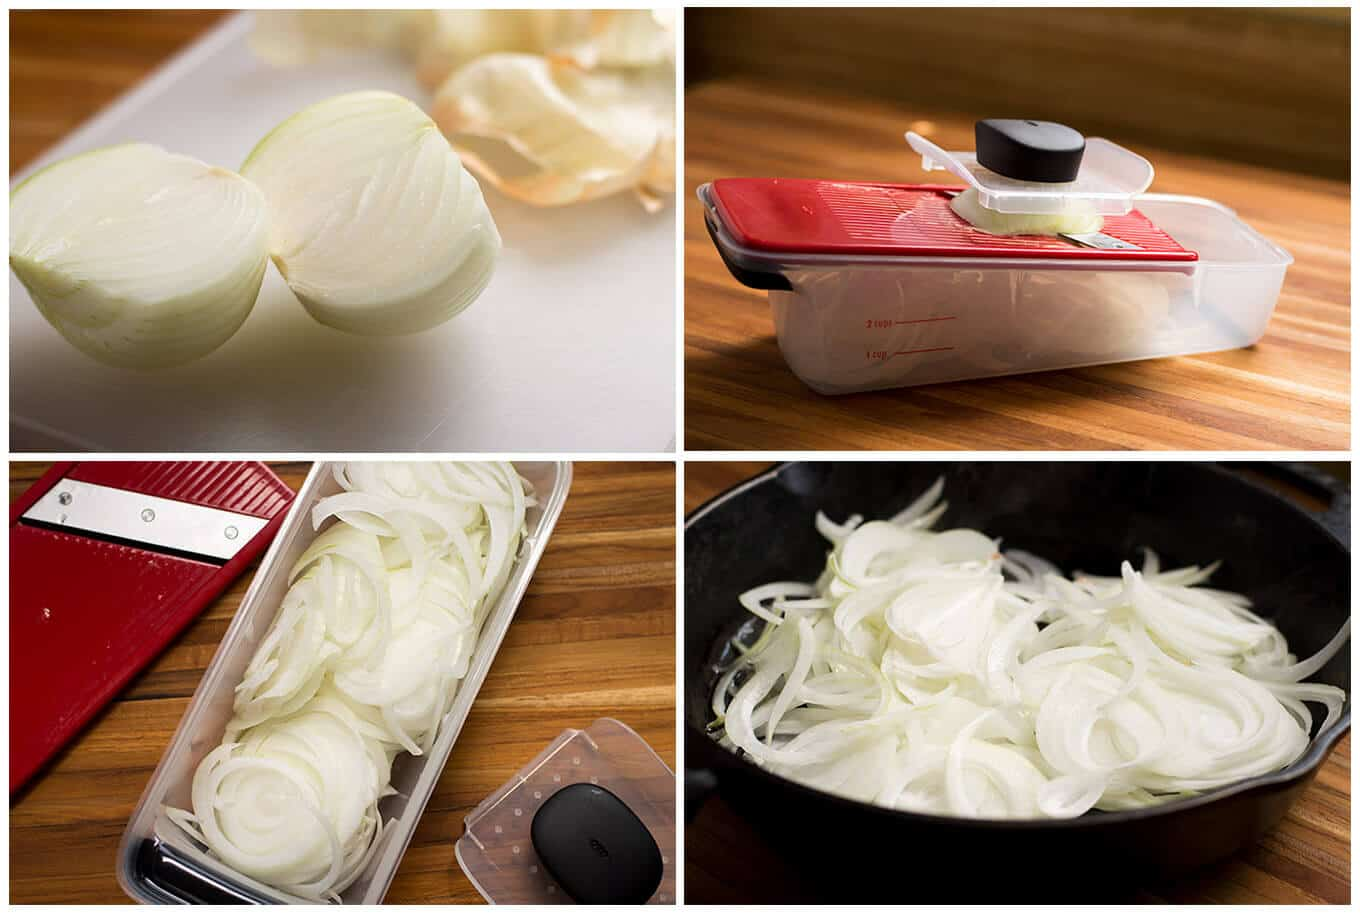 Collage of whole and sliced onions.